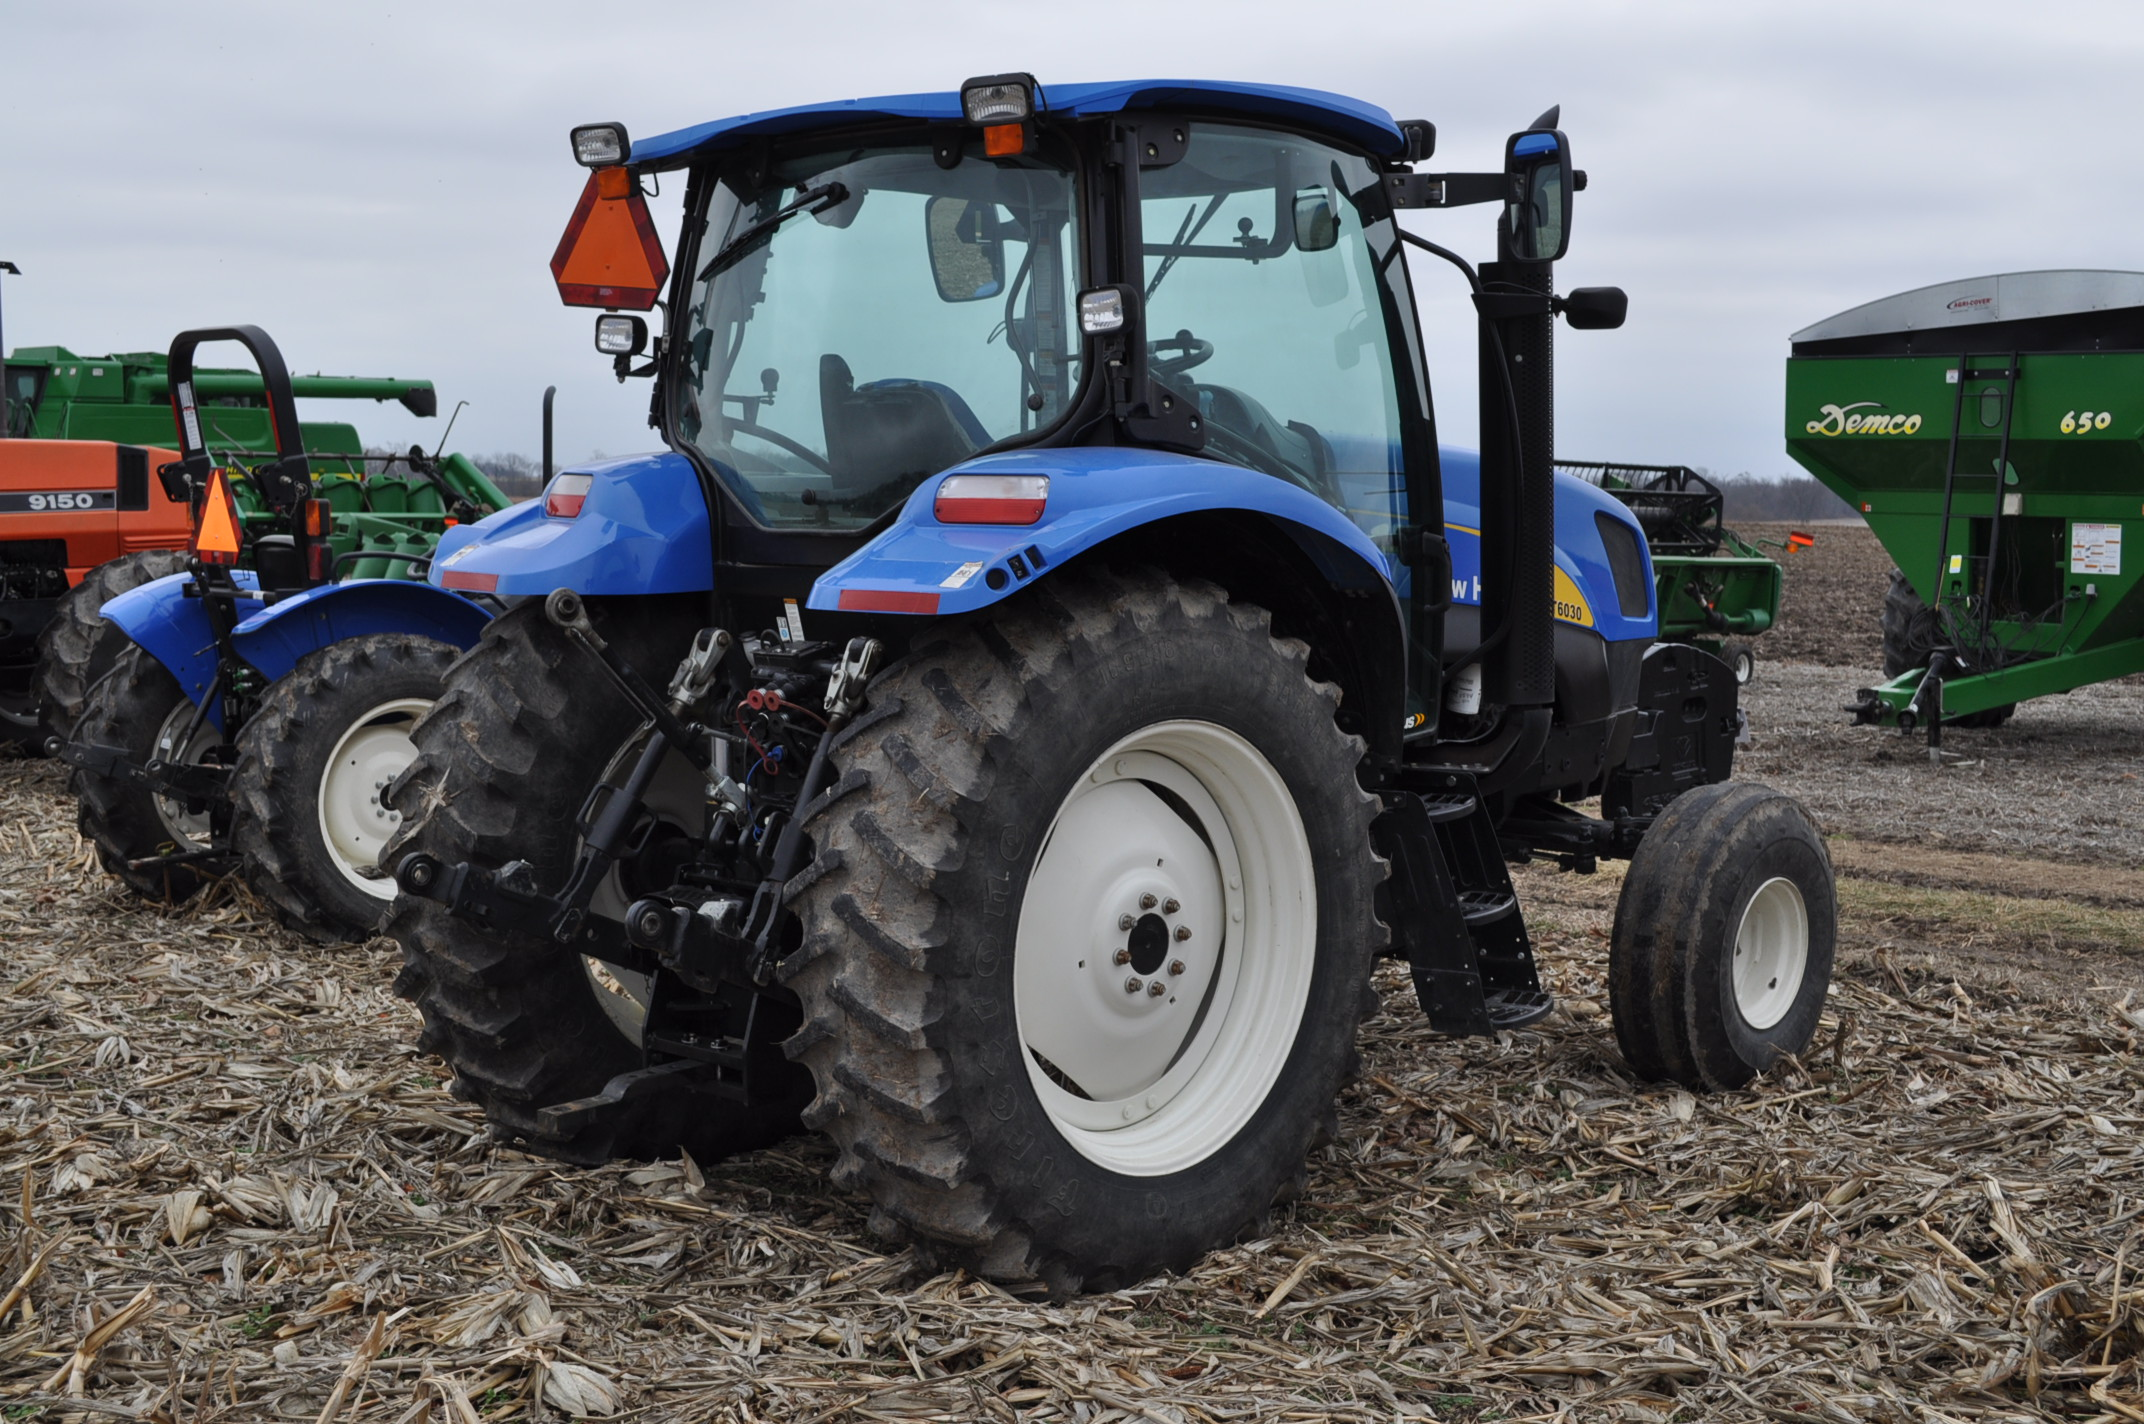 New Holland T6030 tractor, CHA, 16.9 R 38 tires, 11.00-16 front, 6 front wts, 3 hyd remotes, 3 pt, - Image 3 of 21